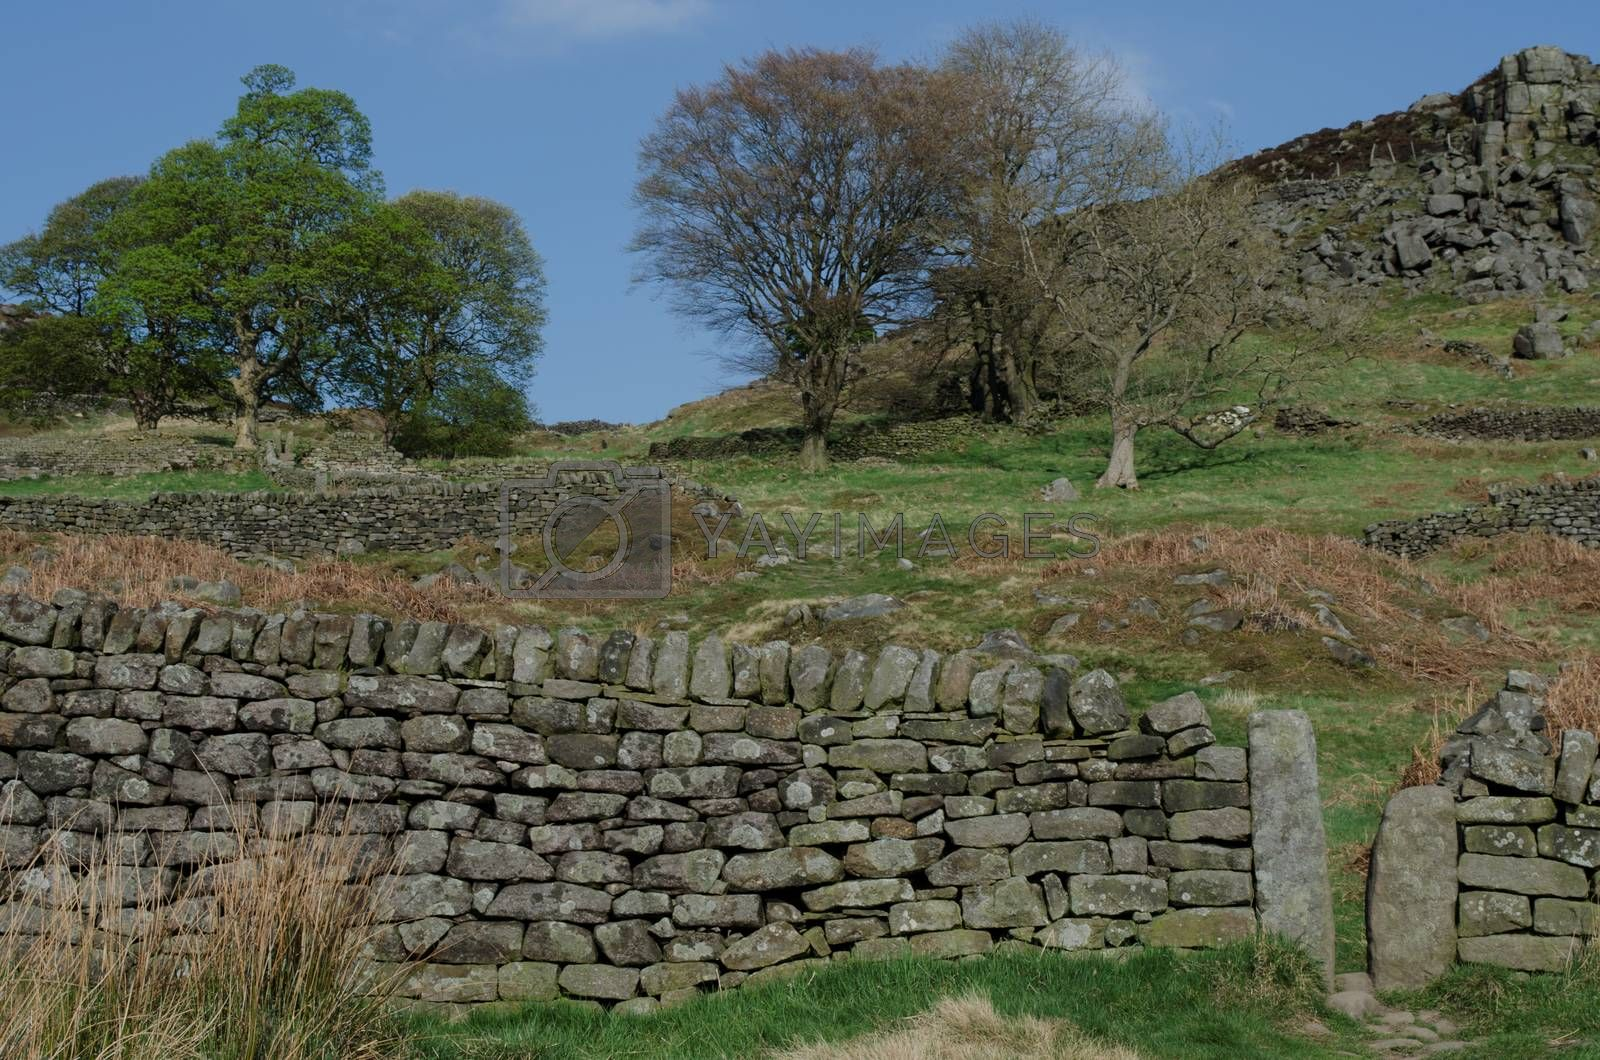 A drystone wall with a narrow gap for ramblers to pass through in the Peak District.